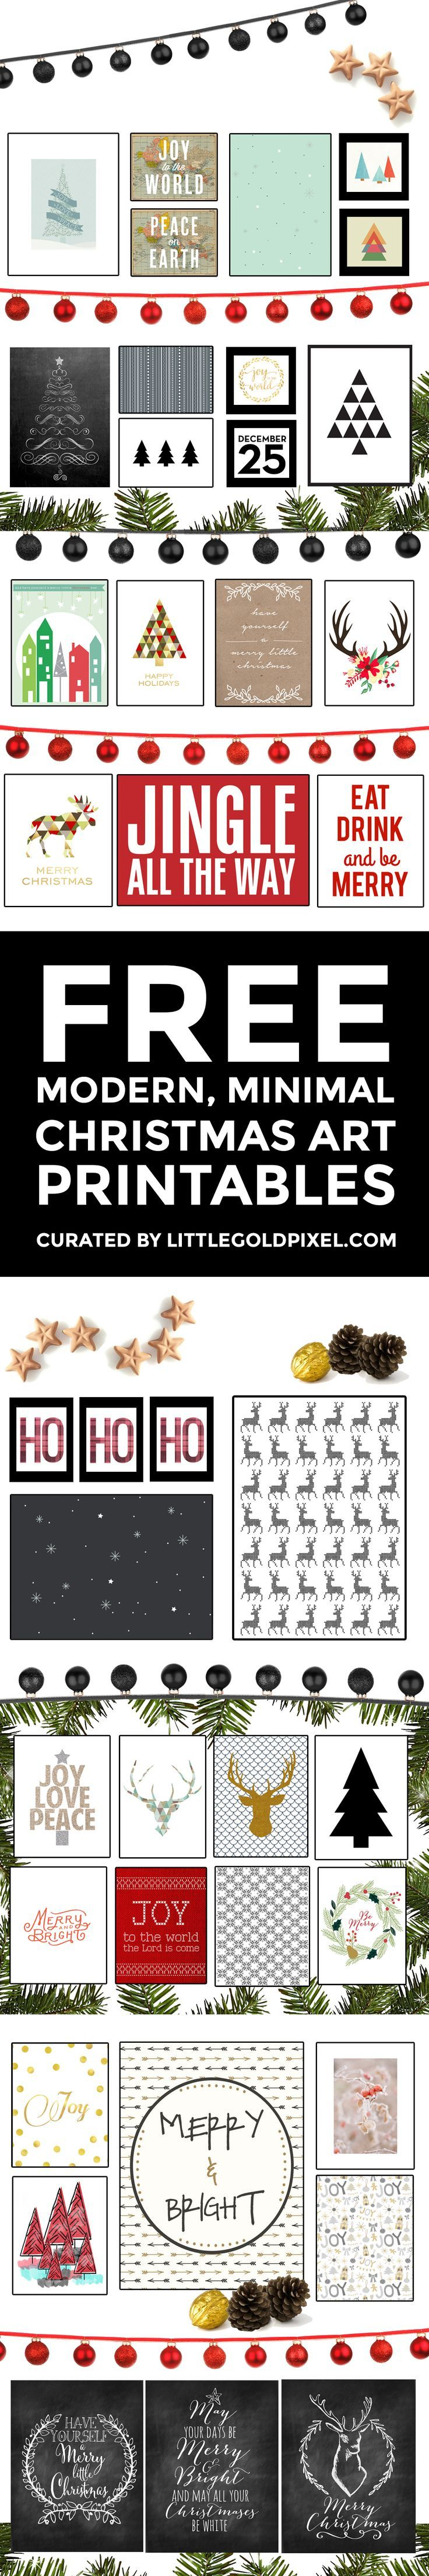 397 best images about Christmas Printables on Pinterest ...